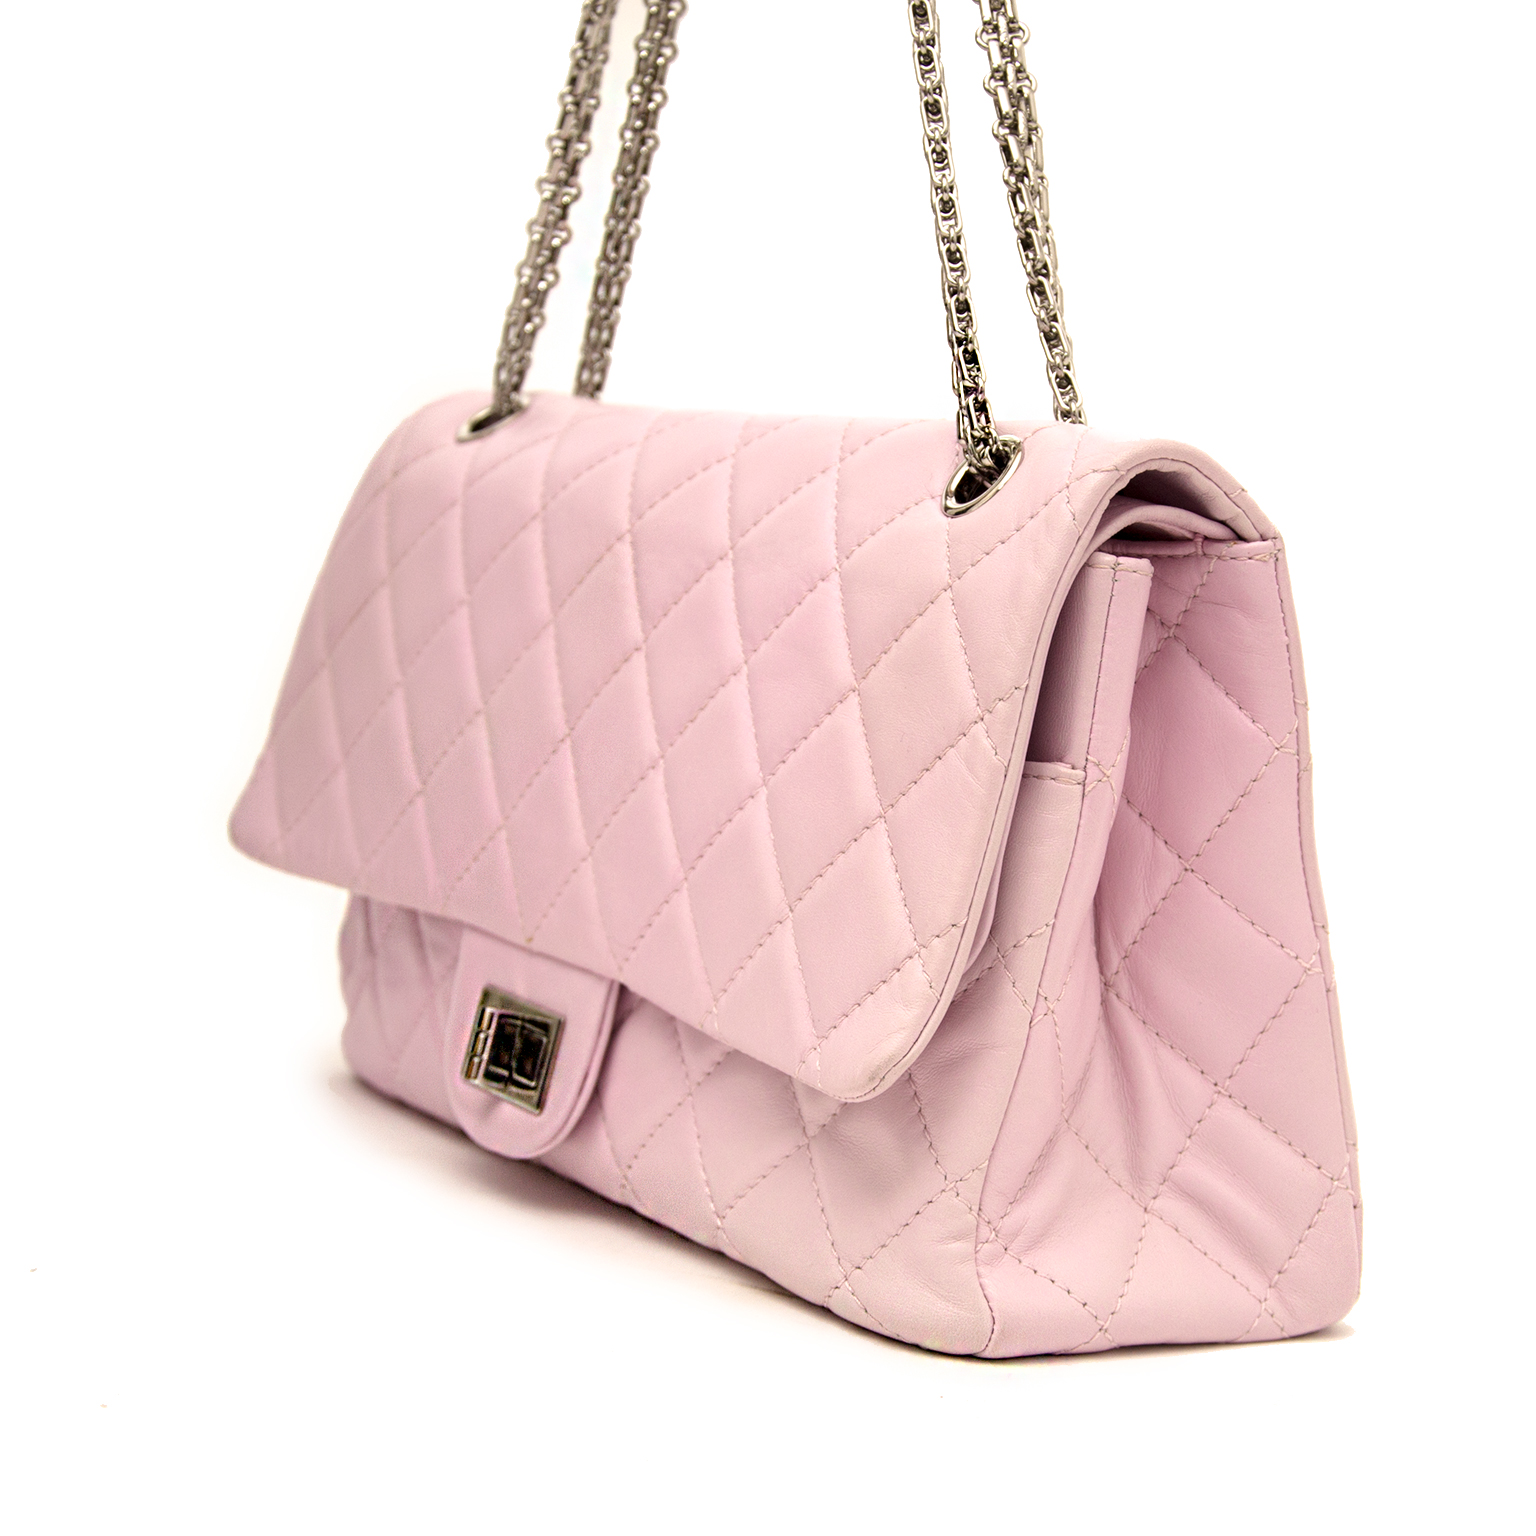 ad631597df86d8 ... shop safe online at the best price chanel 2.55 reissue double flap  lilac like new webshop